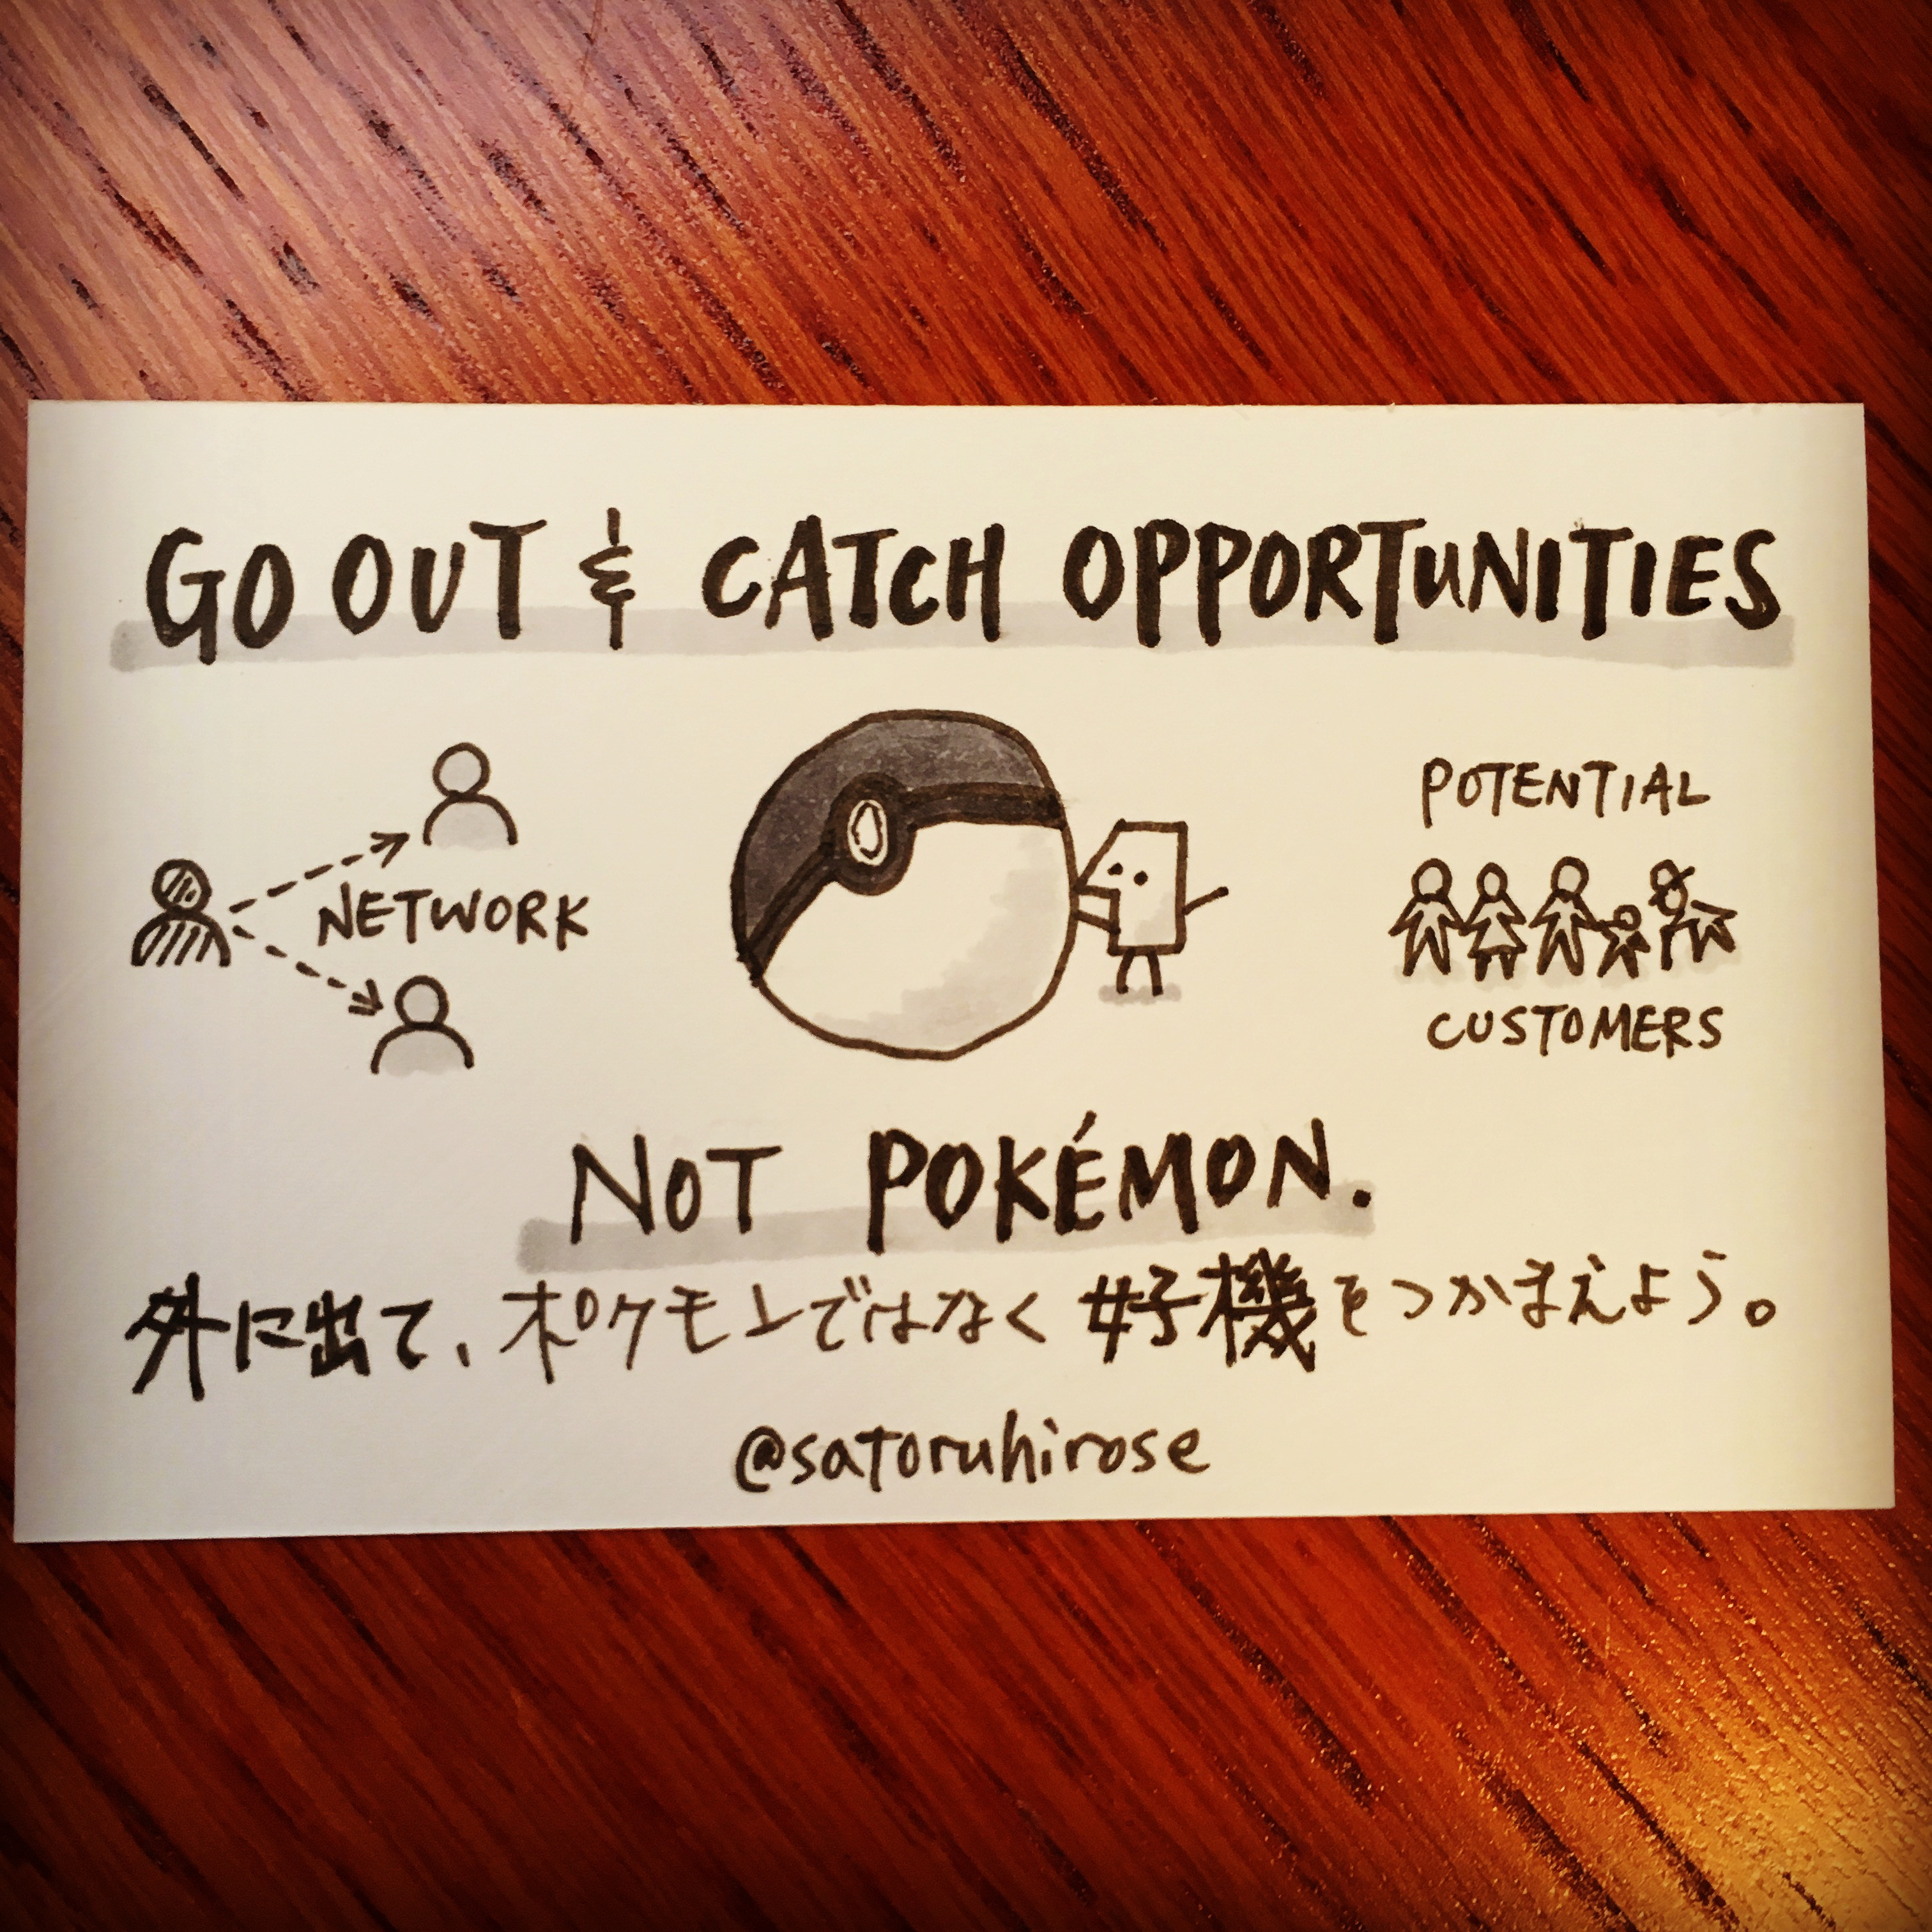 Go out and catch opportunities, not Pokemon.